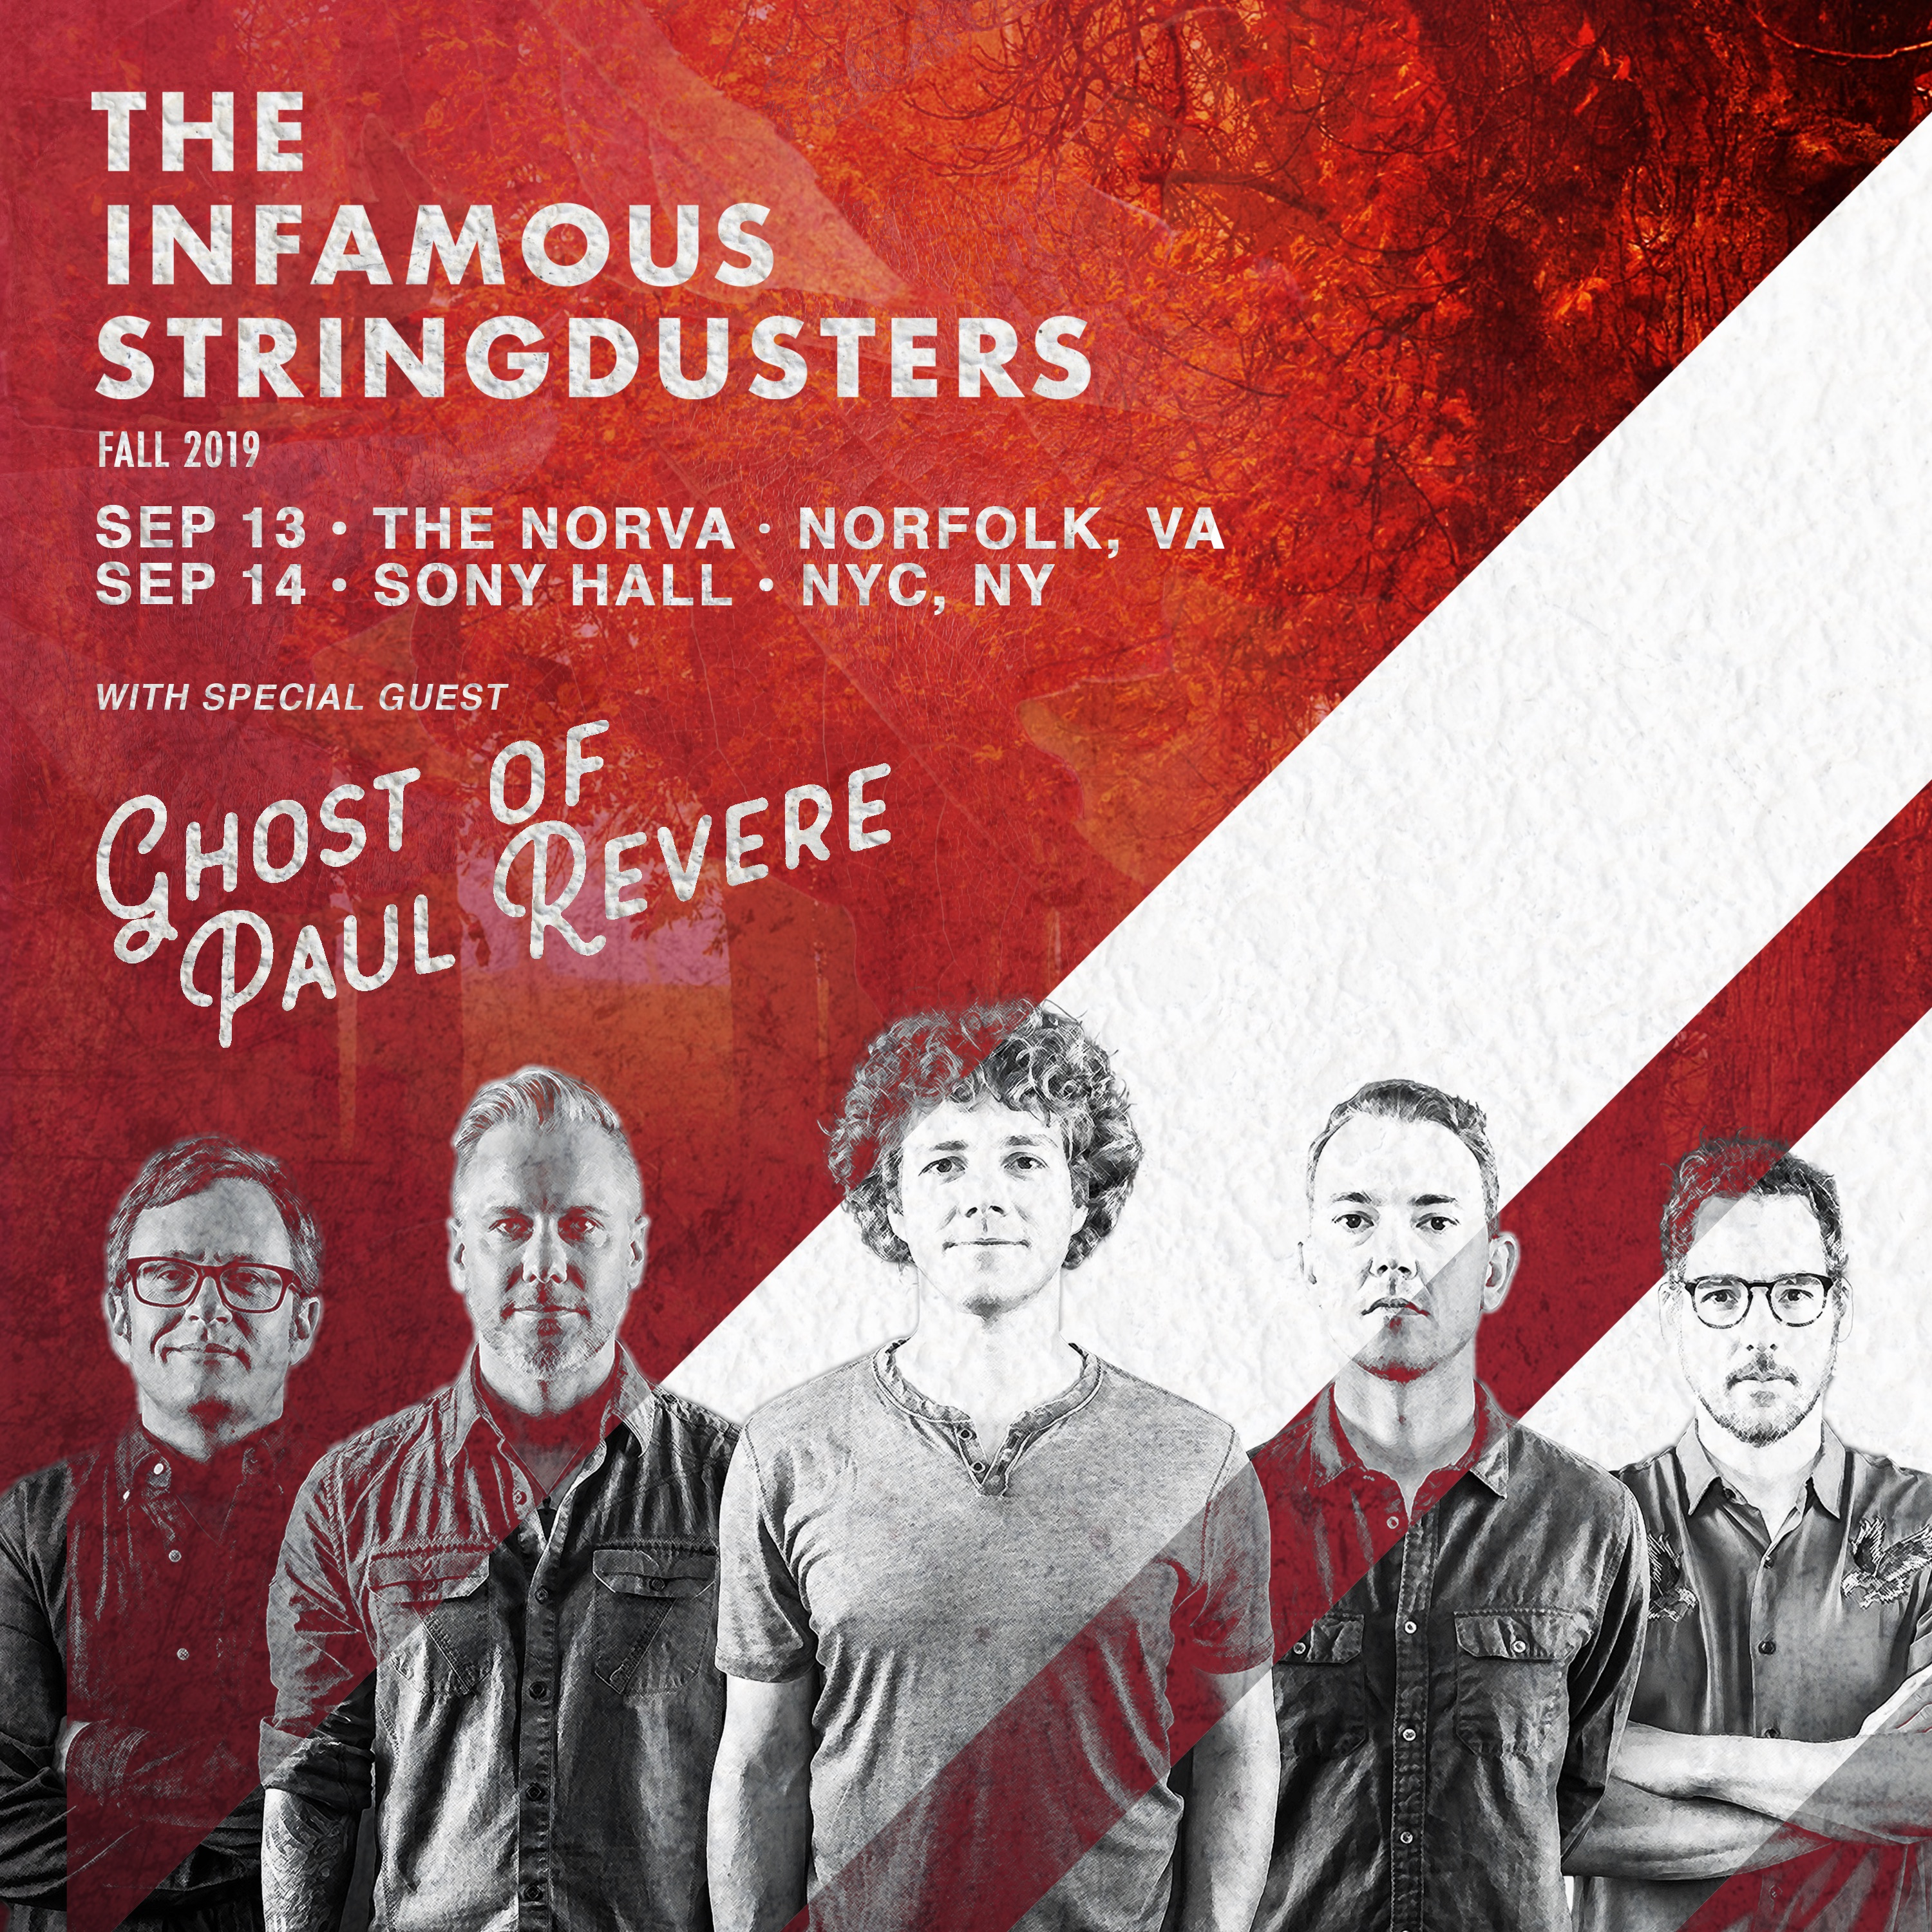 Infamous Stringdusters, Infamous Stringdusters Sony Hall, Infamous Stringdusters NYC